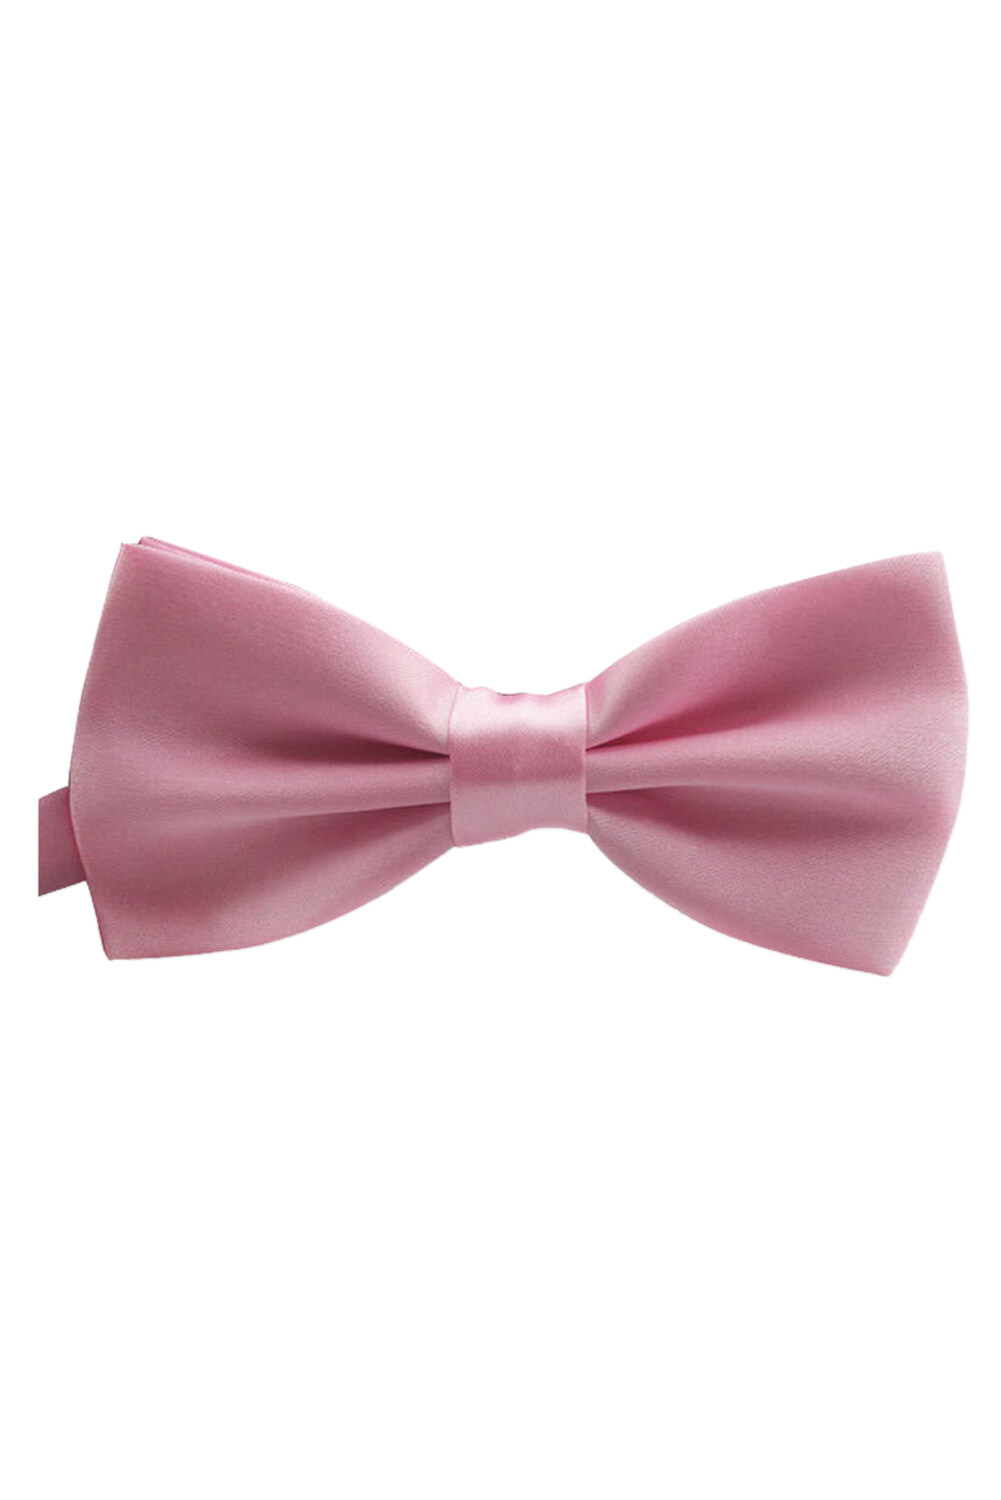 Adjustable Waist Satin Bow Tie Tie Cravat For Men Women Pink - Intl By Greatbuy888.